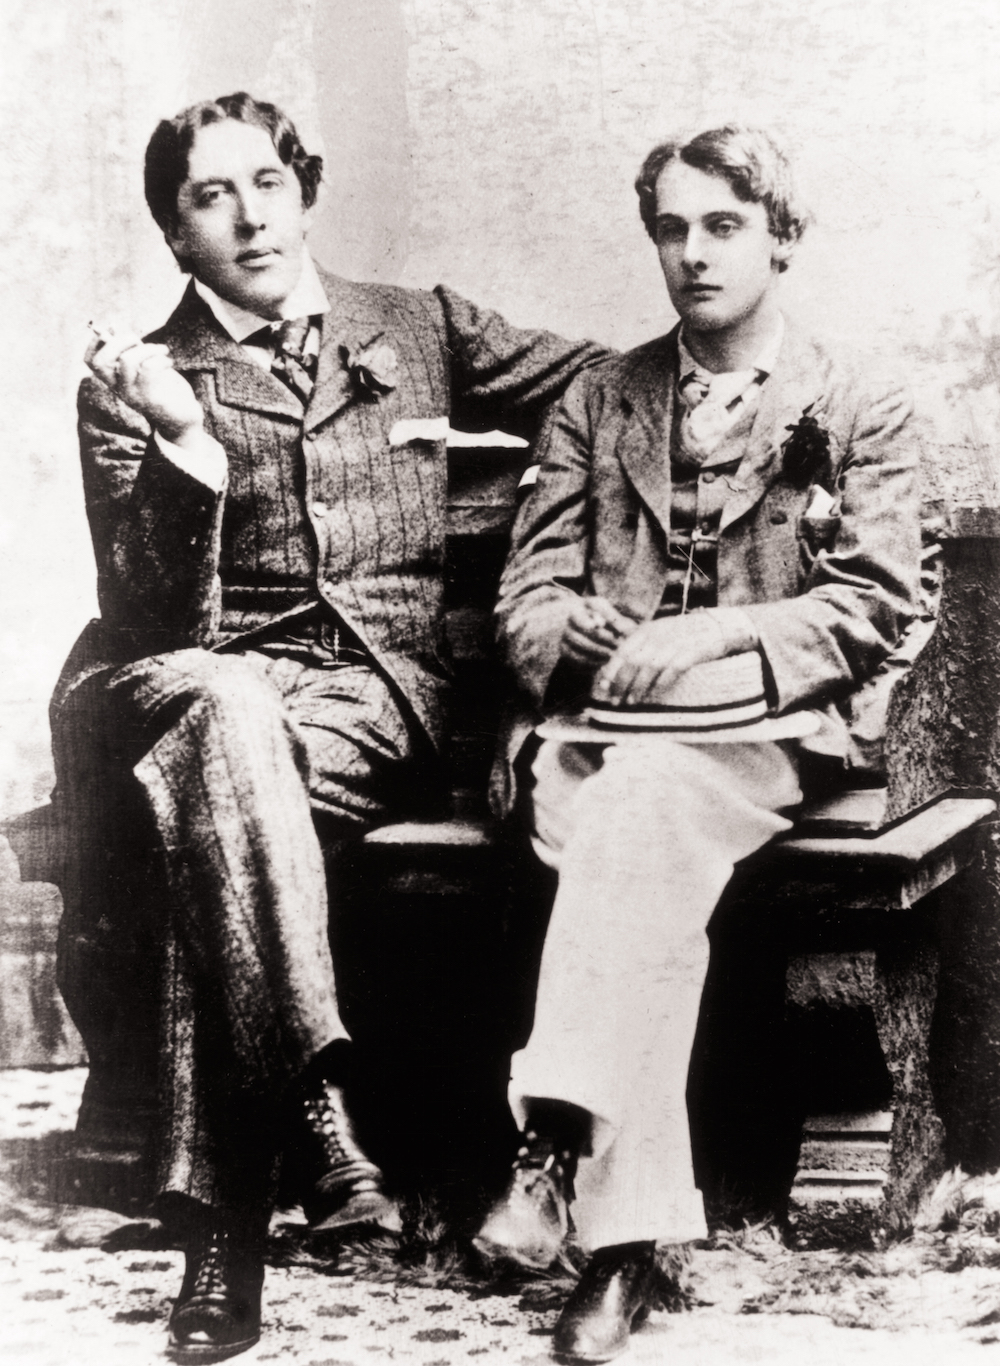 the influence of oscar wildes sexuality His sexuality required the context of his faith for l'affaire oscar wilde and the traces of his influence while attending a play with wilde.